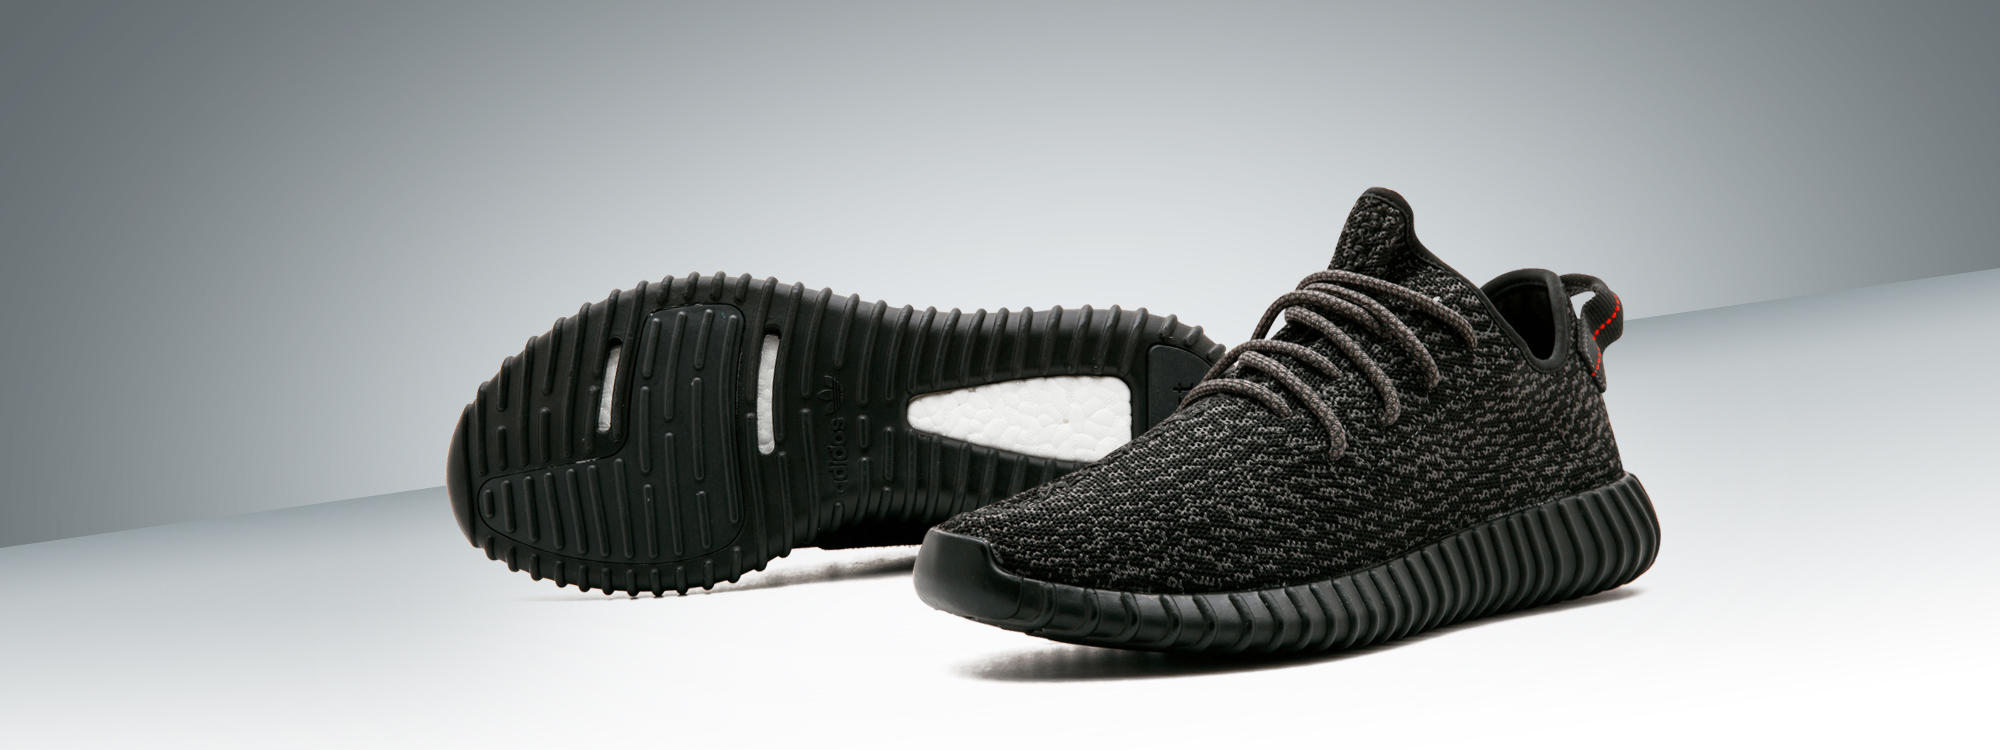 Perfect Adidas Yeezy Boost 350 Pirate Black Free Shipping via DHL cheap